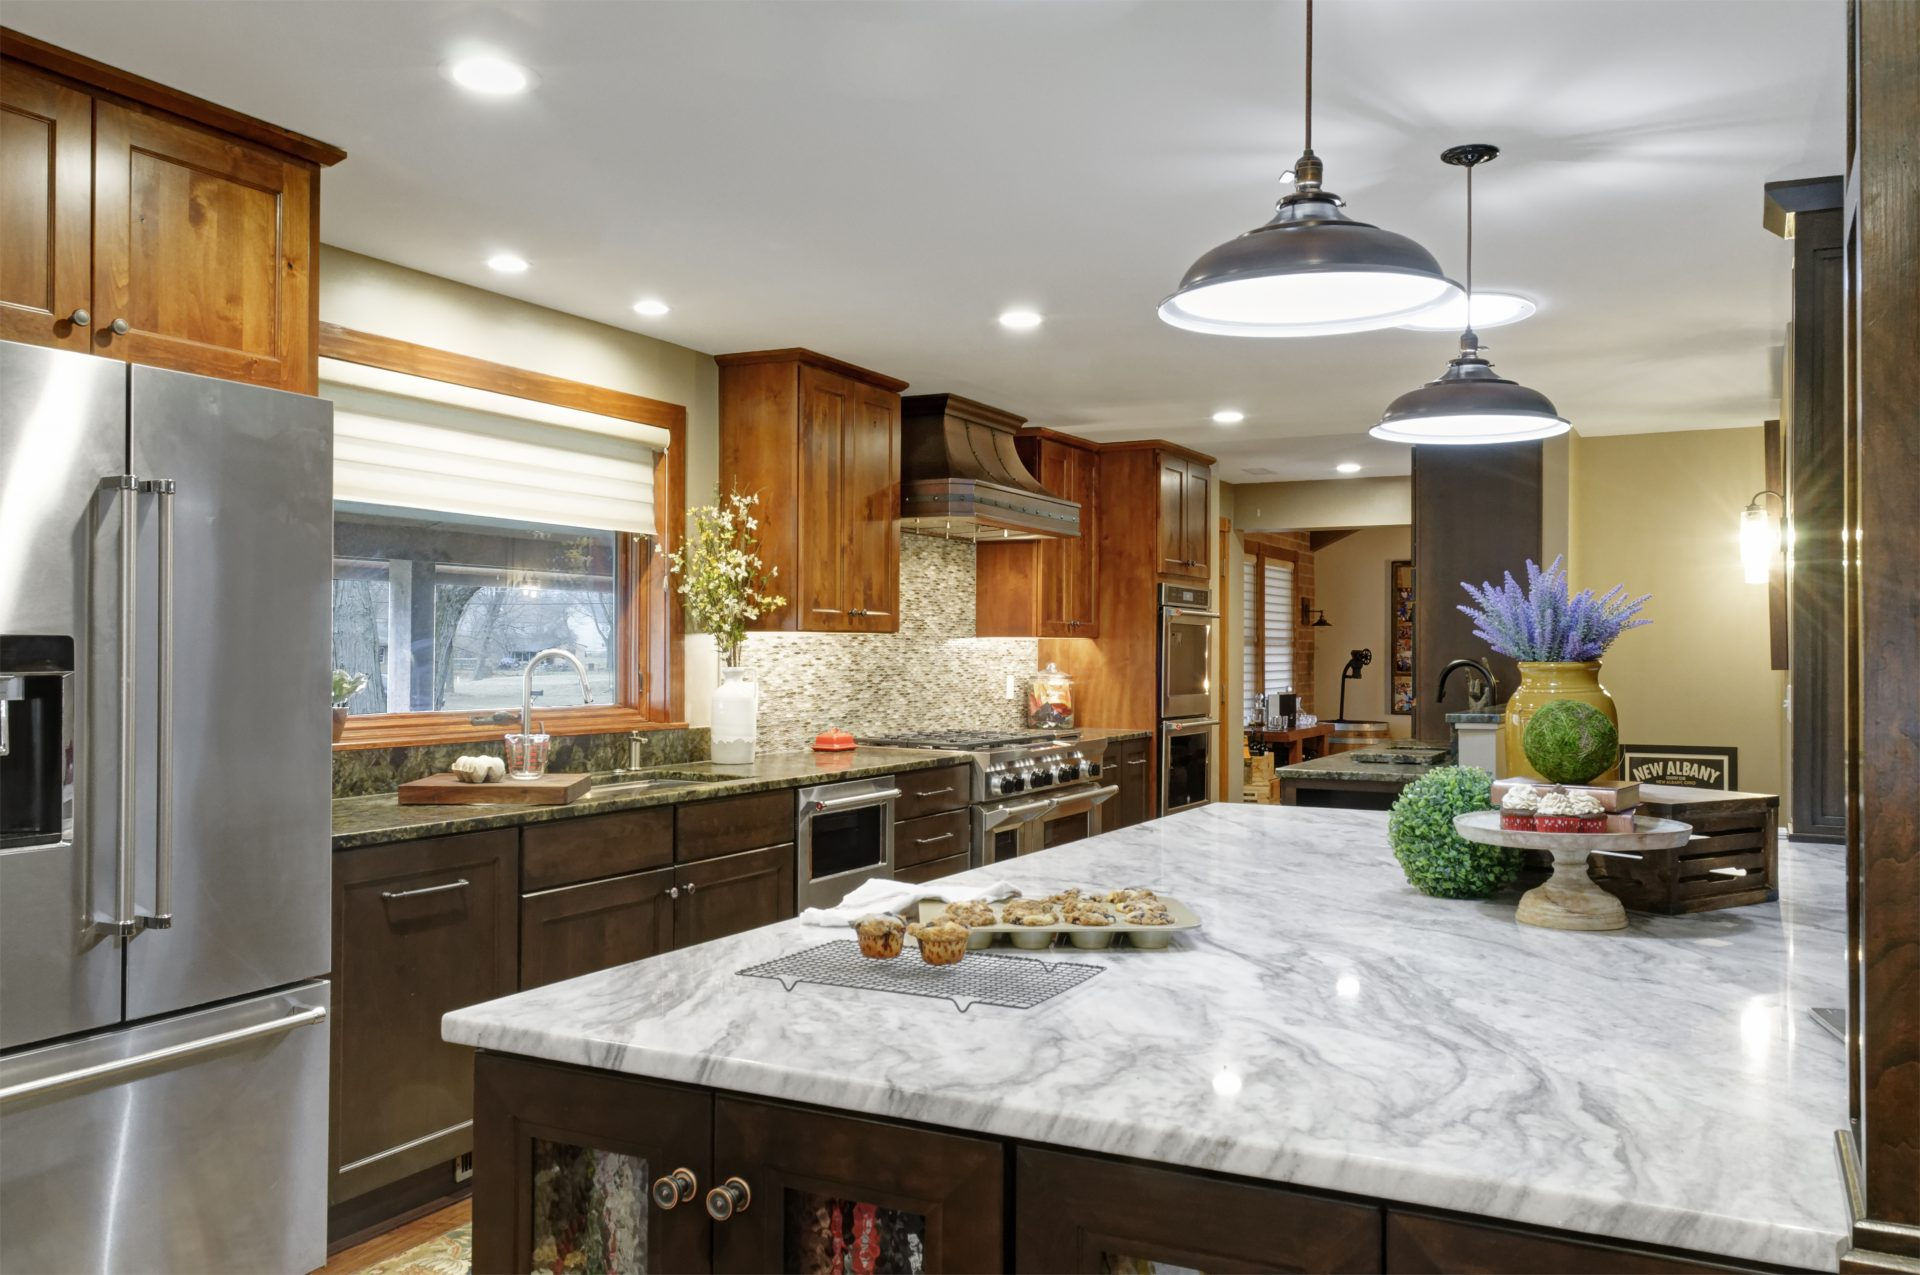 Photos to Inspire Your Kitchen Remodel Design